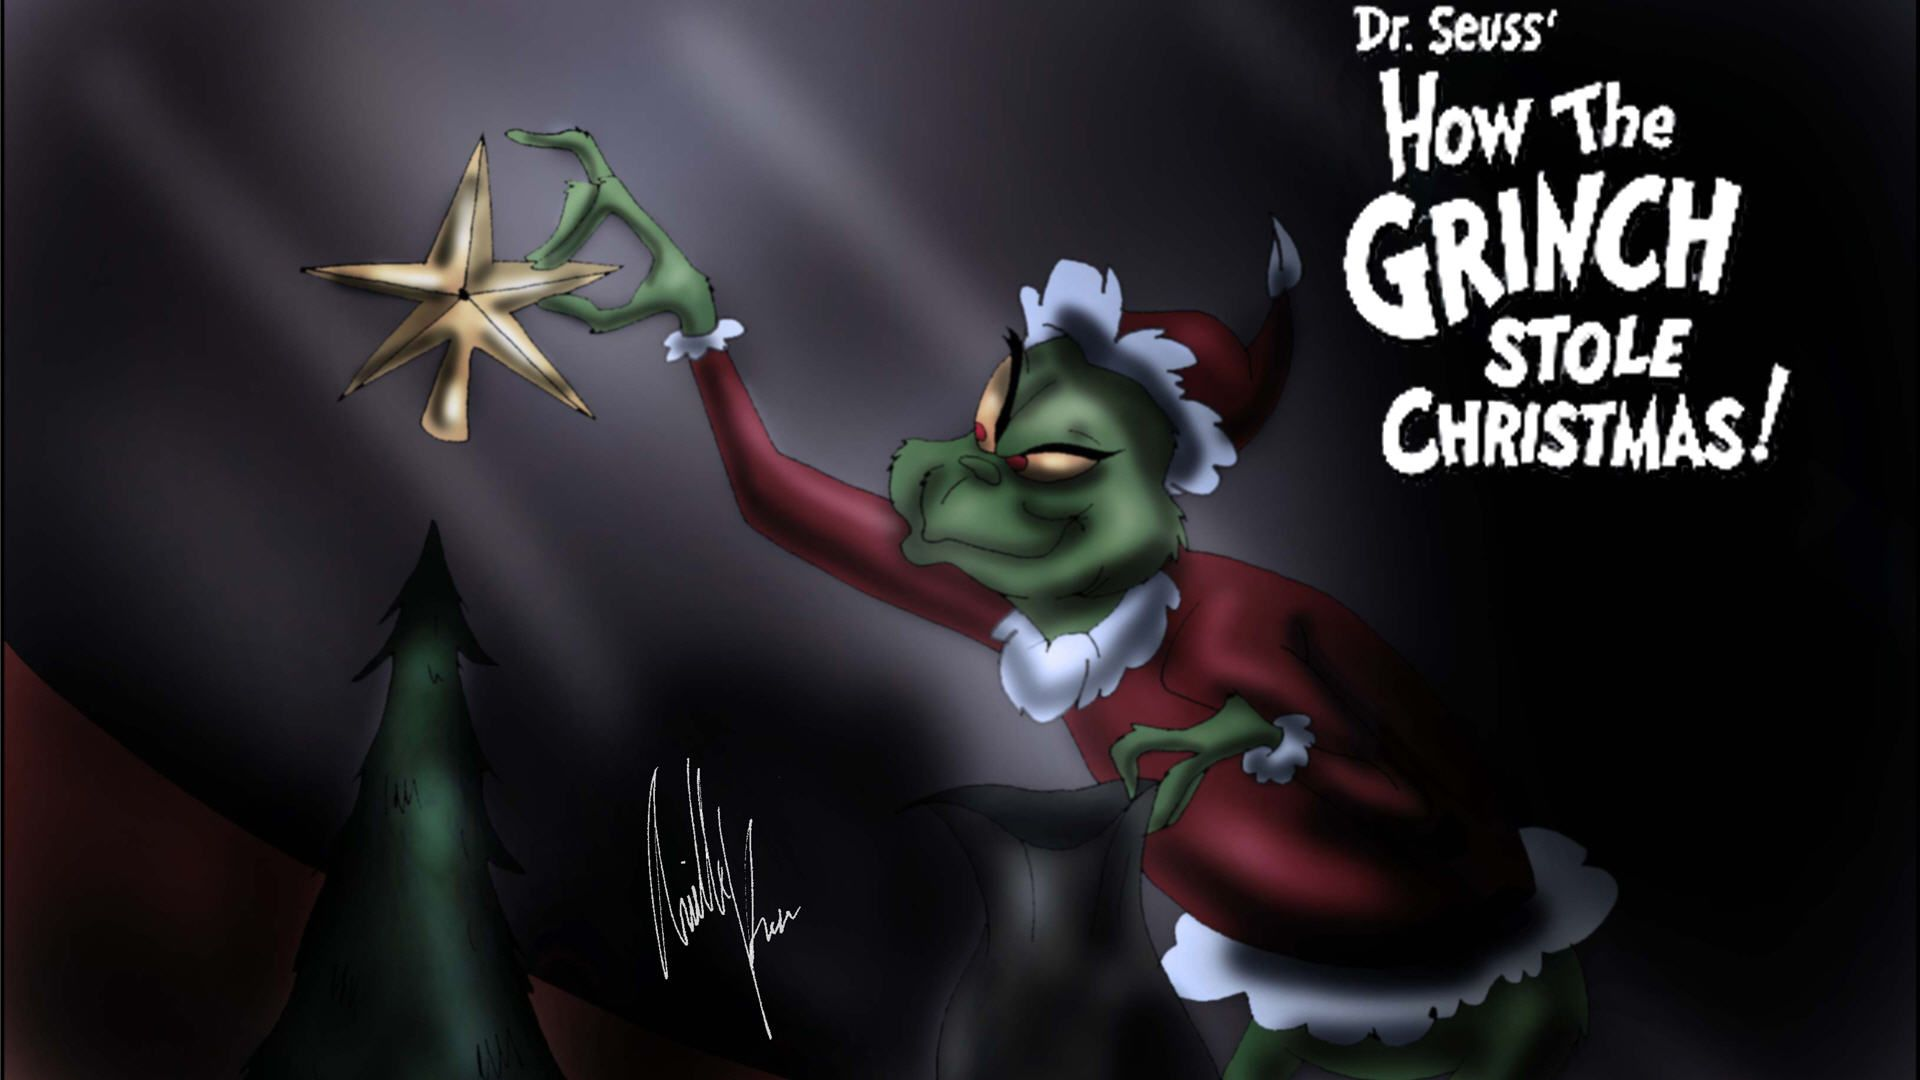 Grinch Christmas Wallpaper Grinch Stole Christmas Christmas Phone Wallpaper Christmas Wallpaper